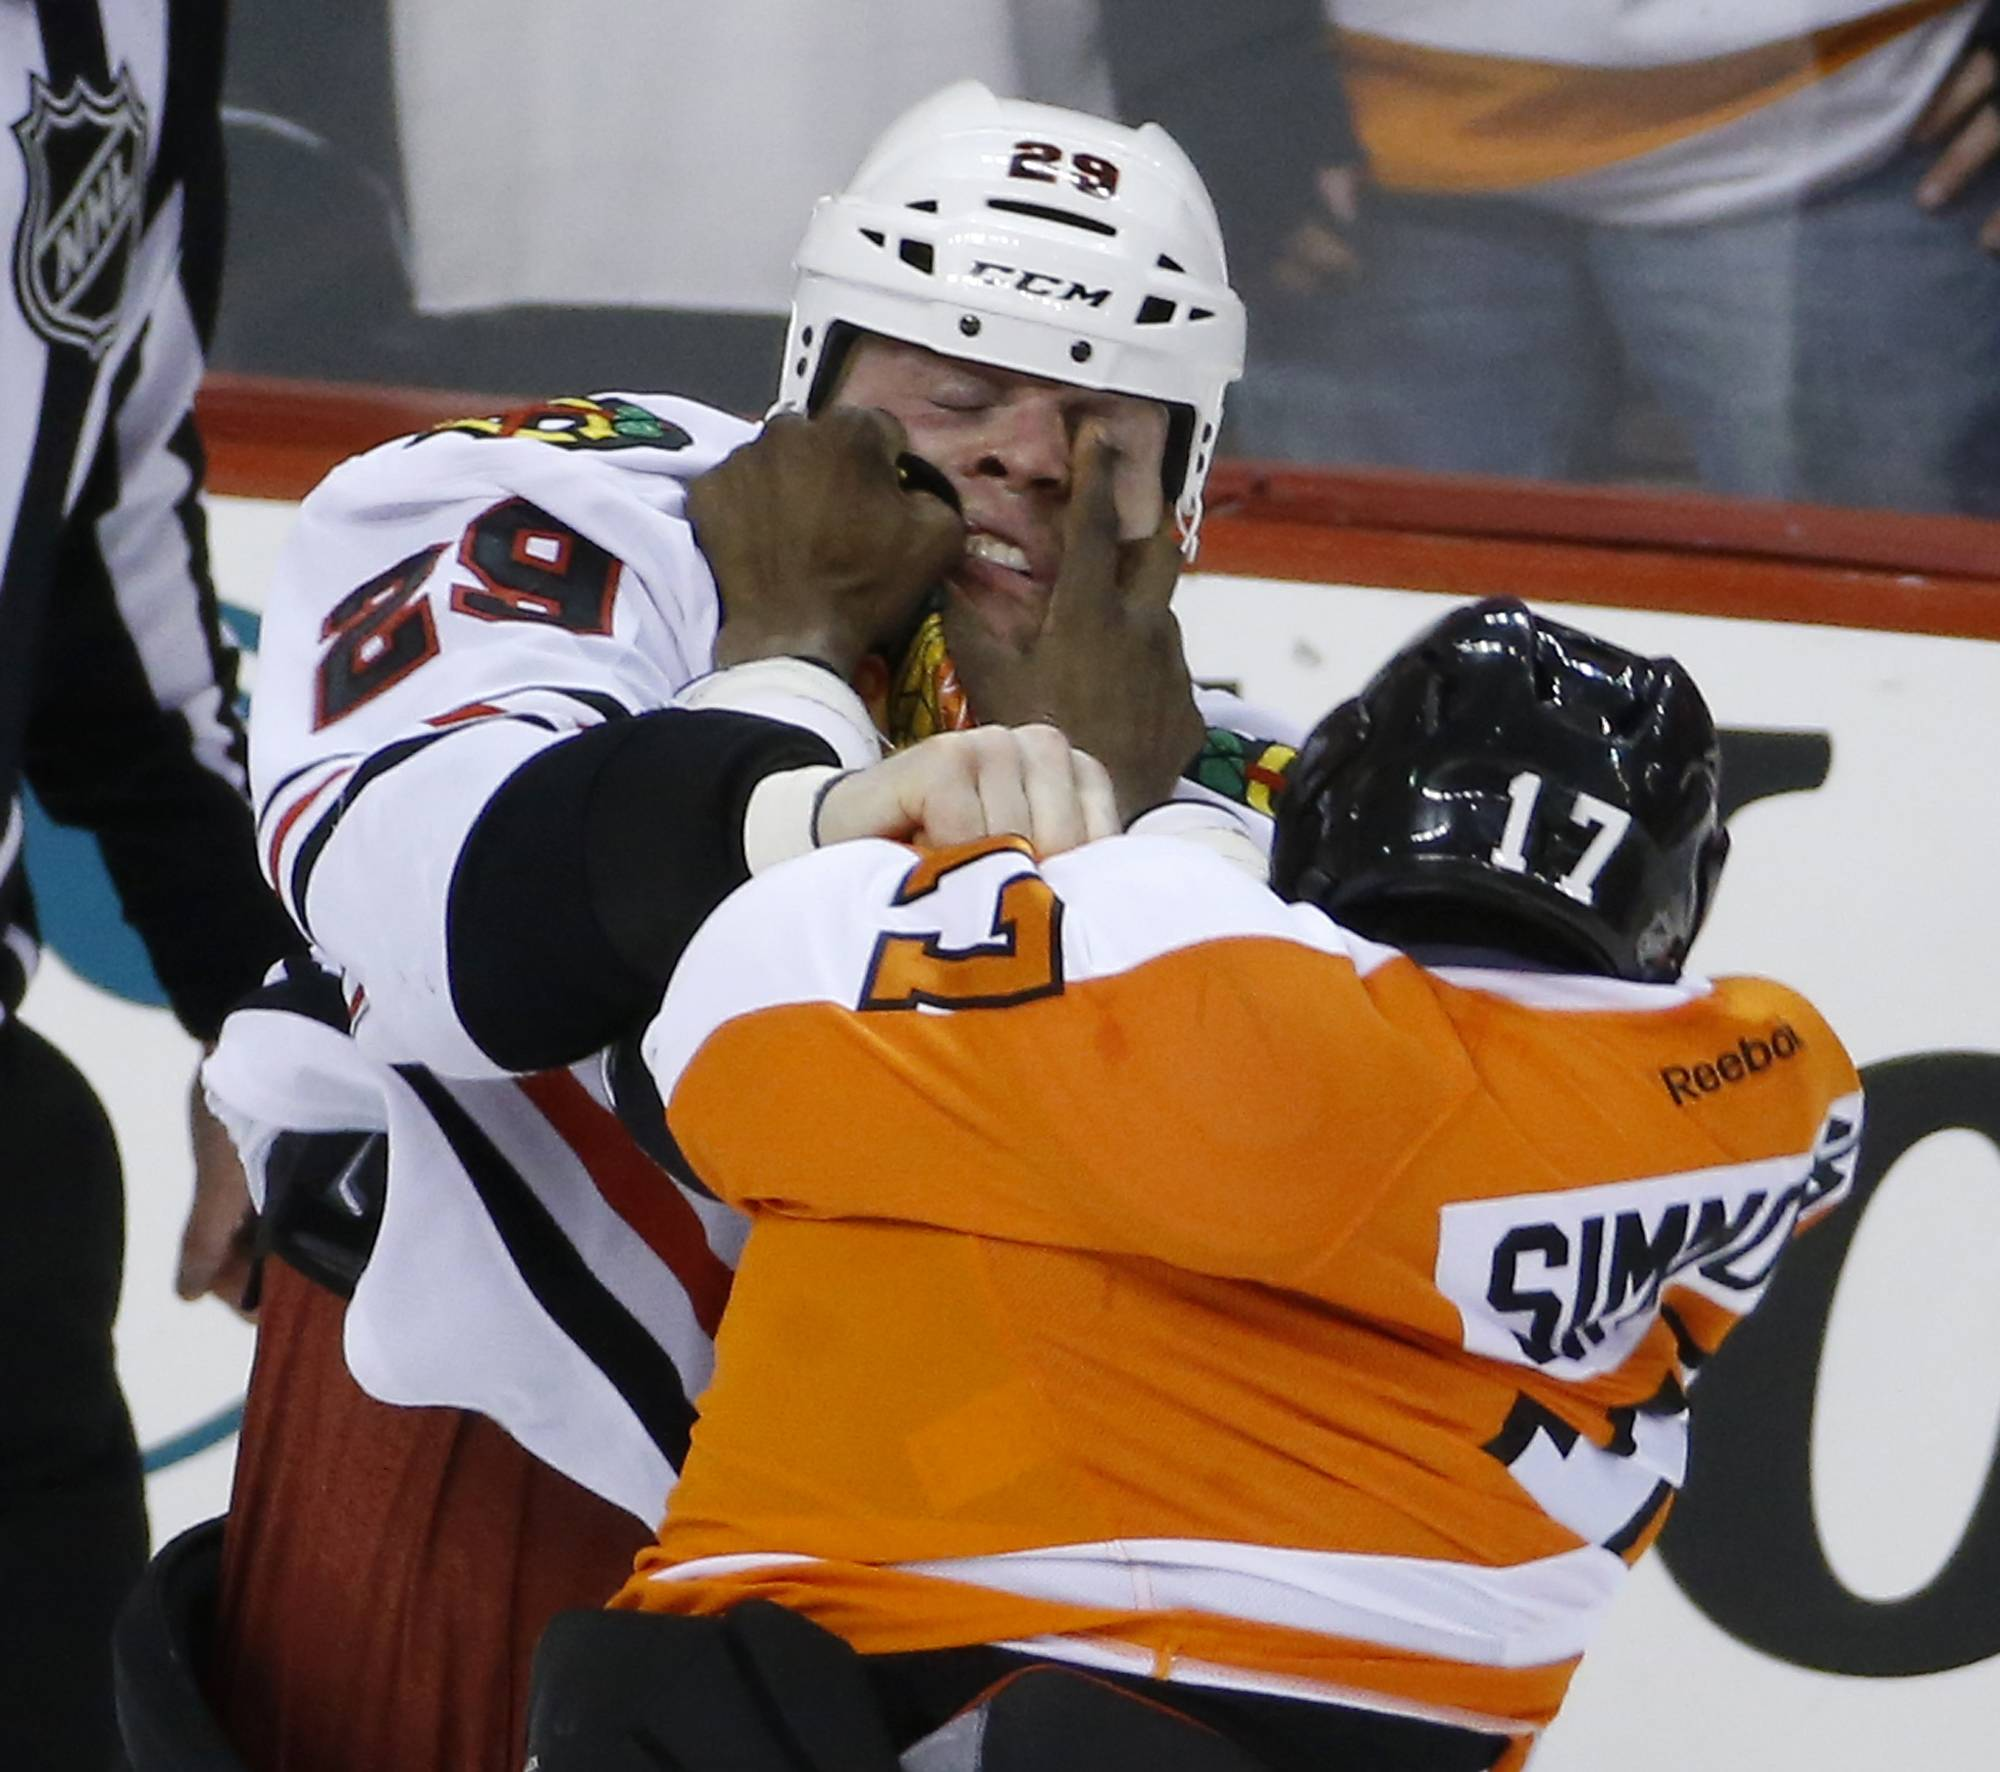 Blackhawks forward Bryan Bickell, left, and the Philadelphia Flyers' Wayne Simmonds fight Tuesday during the third period in Philadelphia. Philadelphia won 3-2 in overtime.